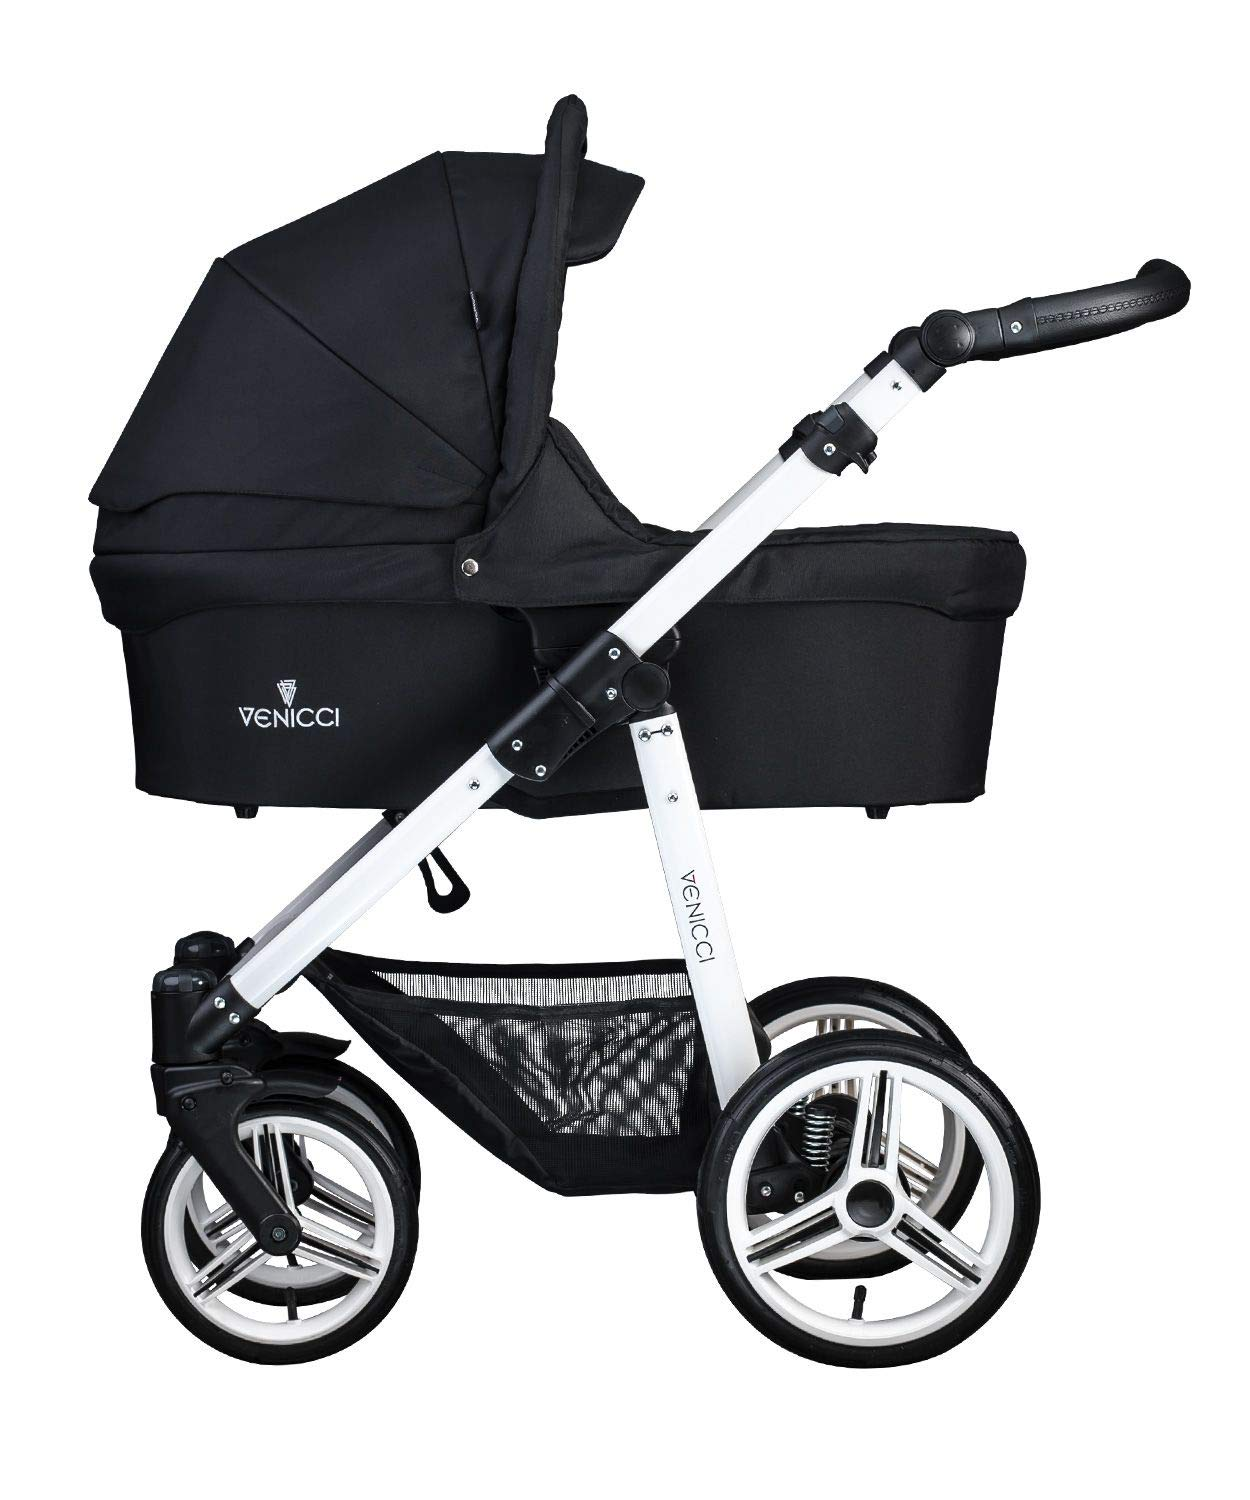 Venicci Soft Vento 3-in-1 Travel System - Black/White - with Carrycot + Car Seat + Changing Bag + Footmuff + Raincover + Mosquito Net + 5-Point Harness and UV 50+ Fabric + Car Seat Adapters  3 in 1 Travel System with included Group 0+ Car Seat Suitable for your baby from birth until 36 months 5-point harness to enhance the safety of your child 2